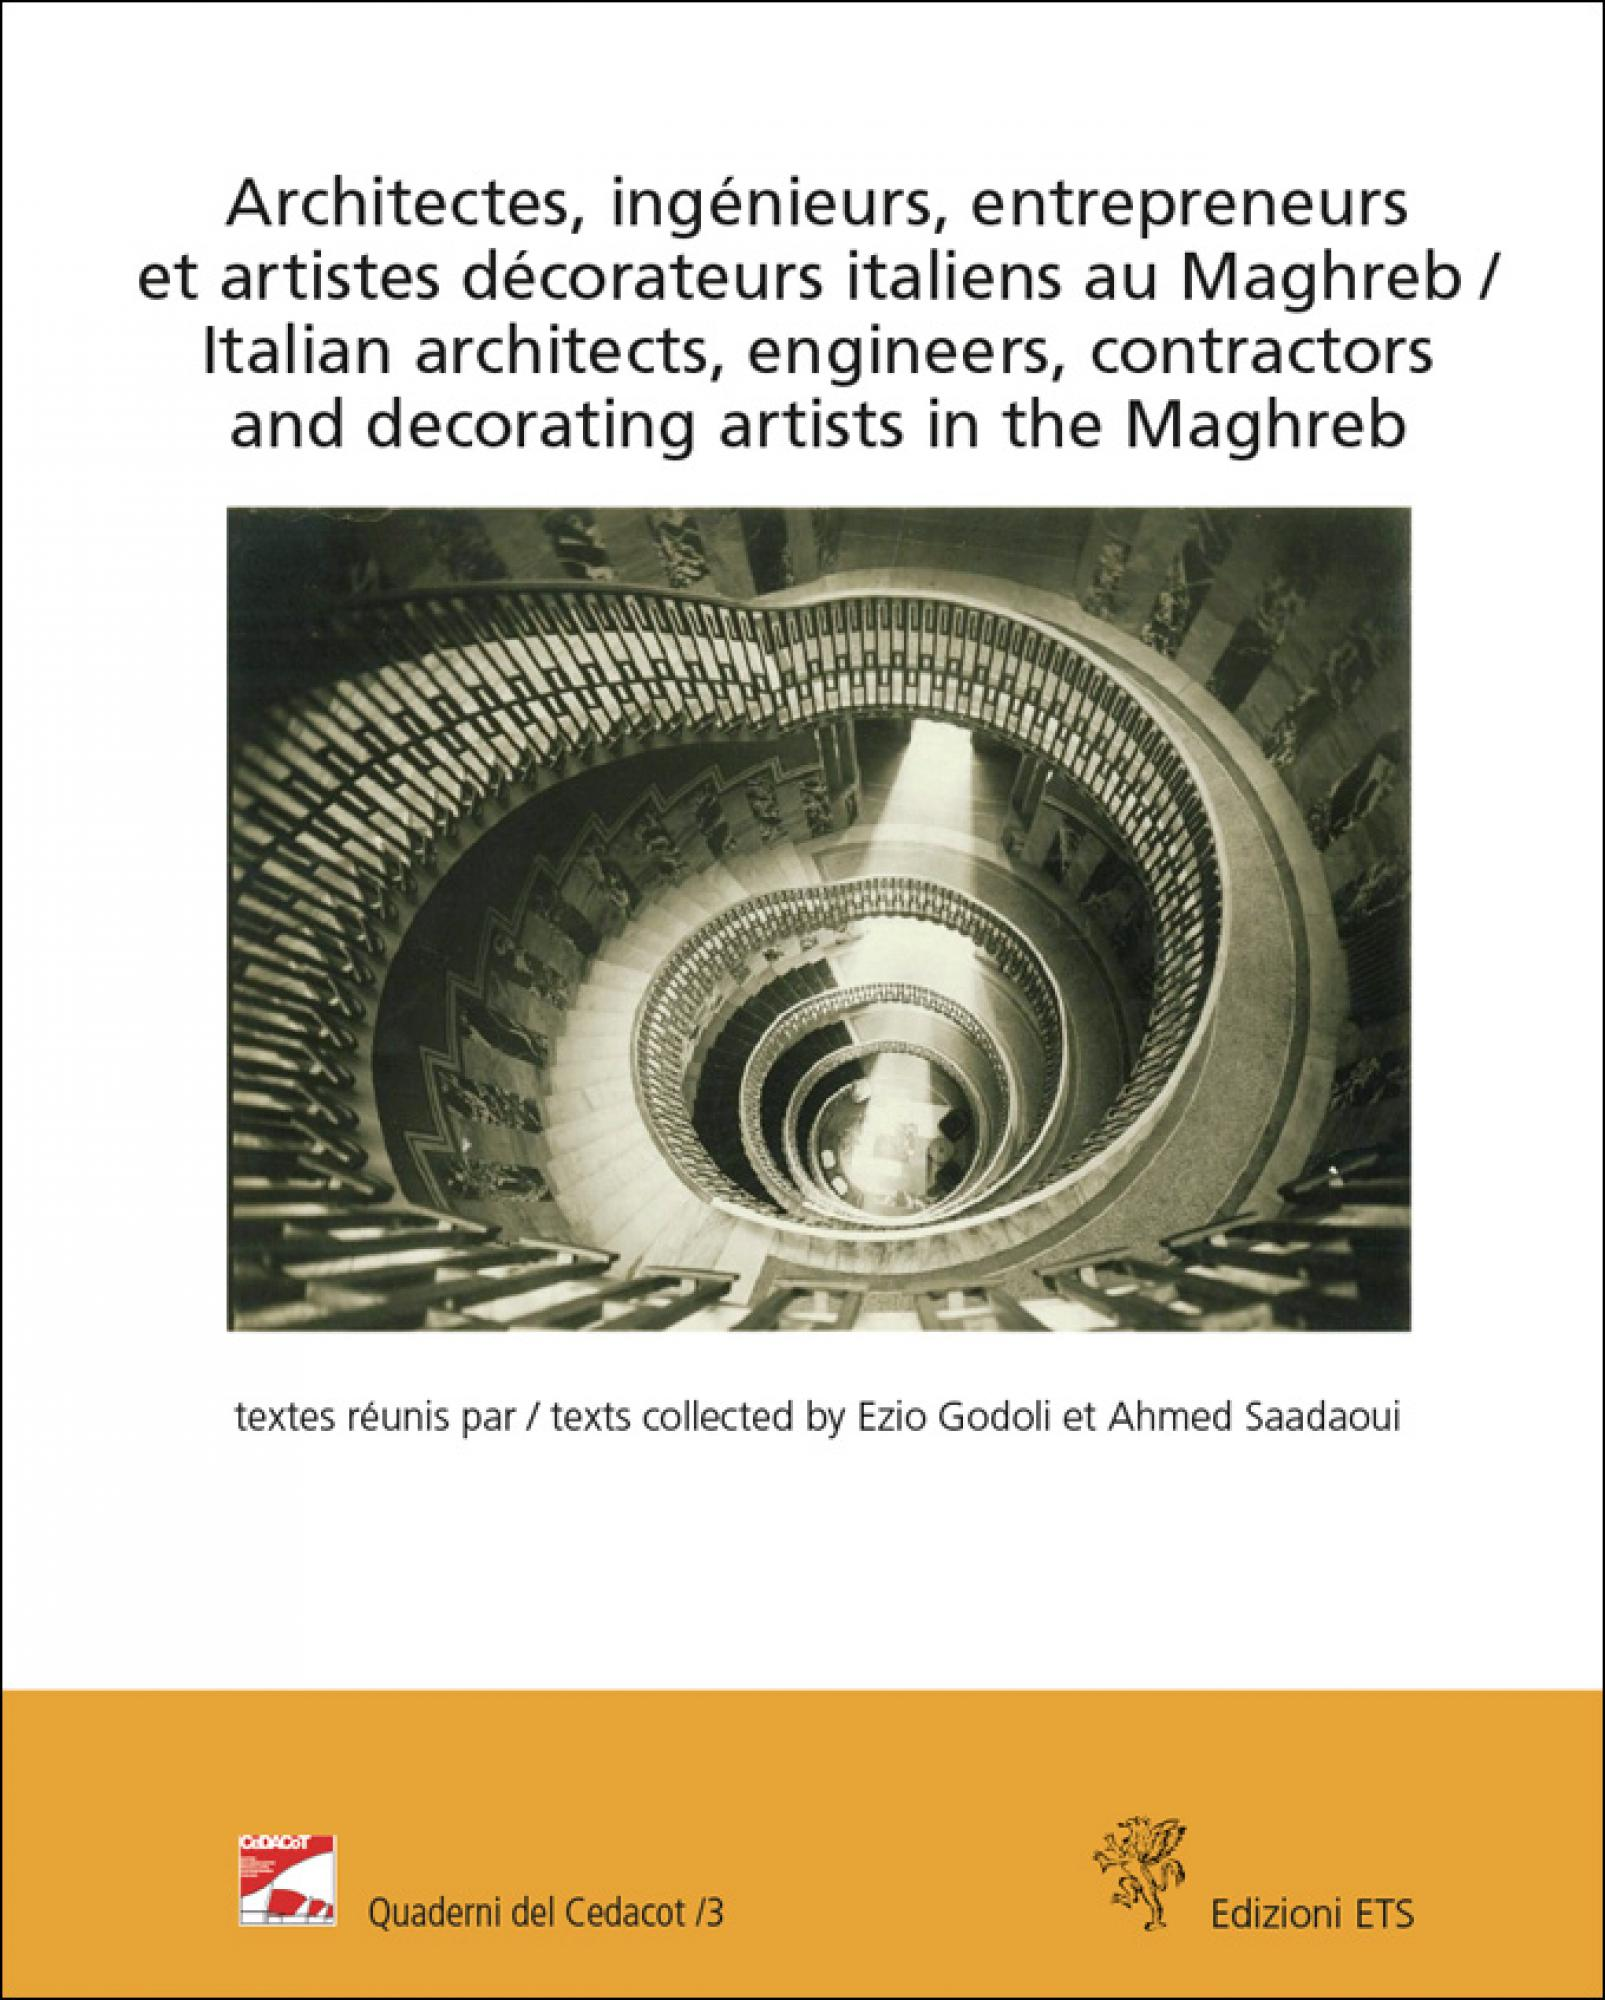 Architectes, ingénieurs, entrepreneurs et artistes décorateurs italiens au Maghreb / Italian architects, engineers, contractors and decorating artists in the Maghreb